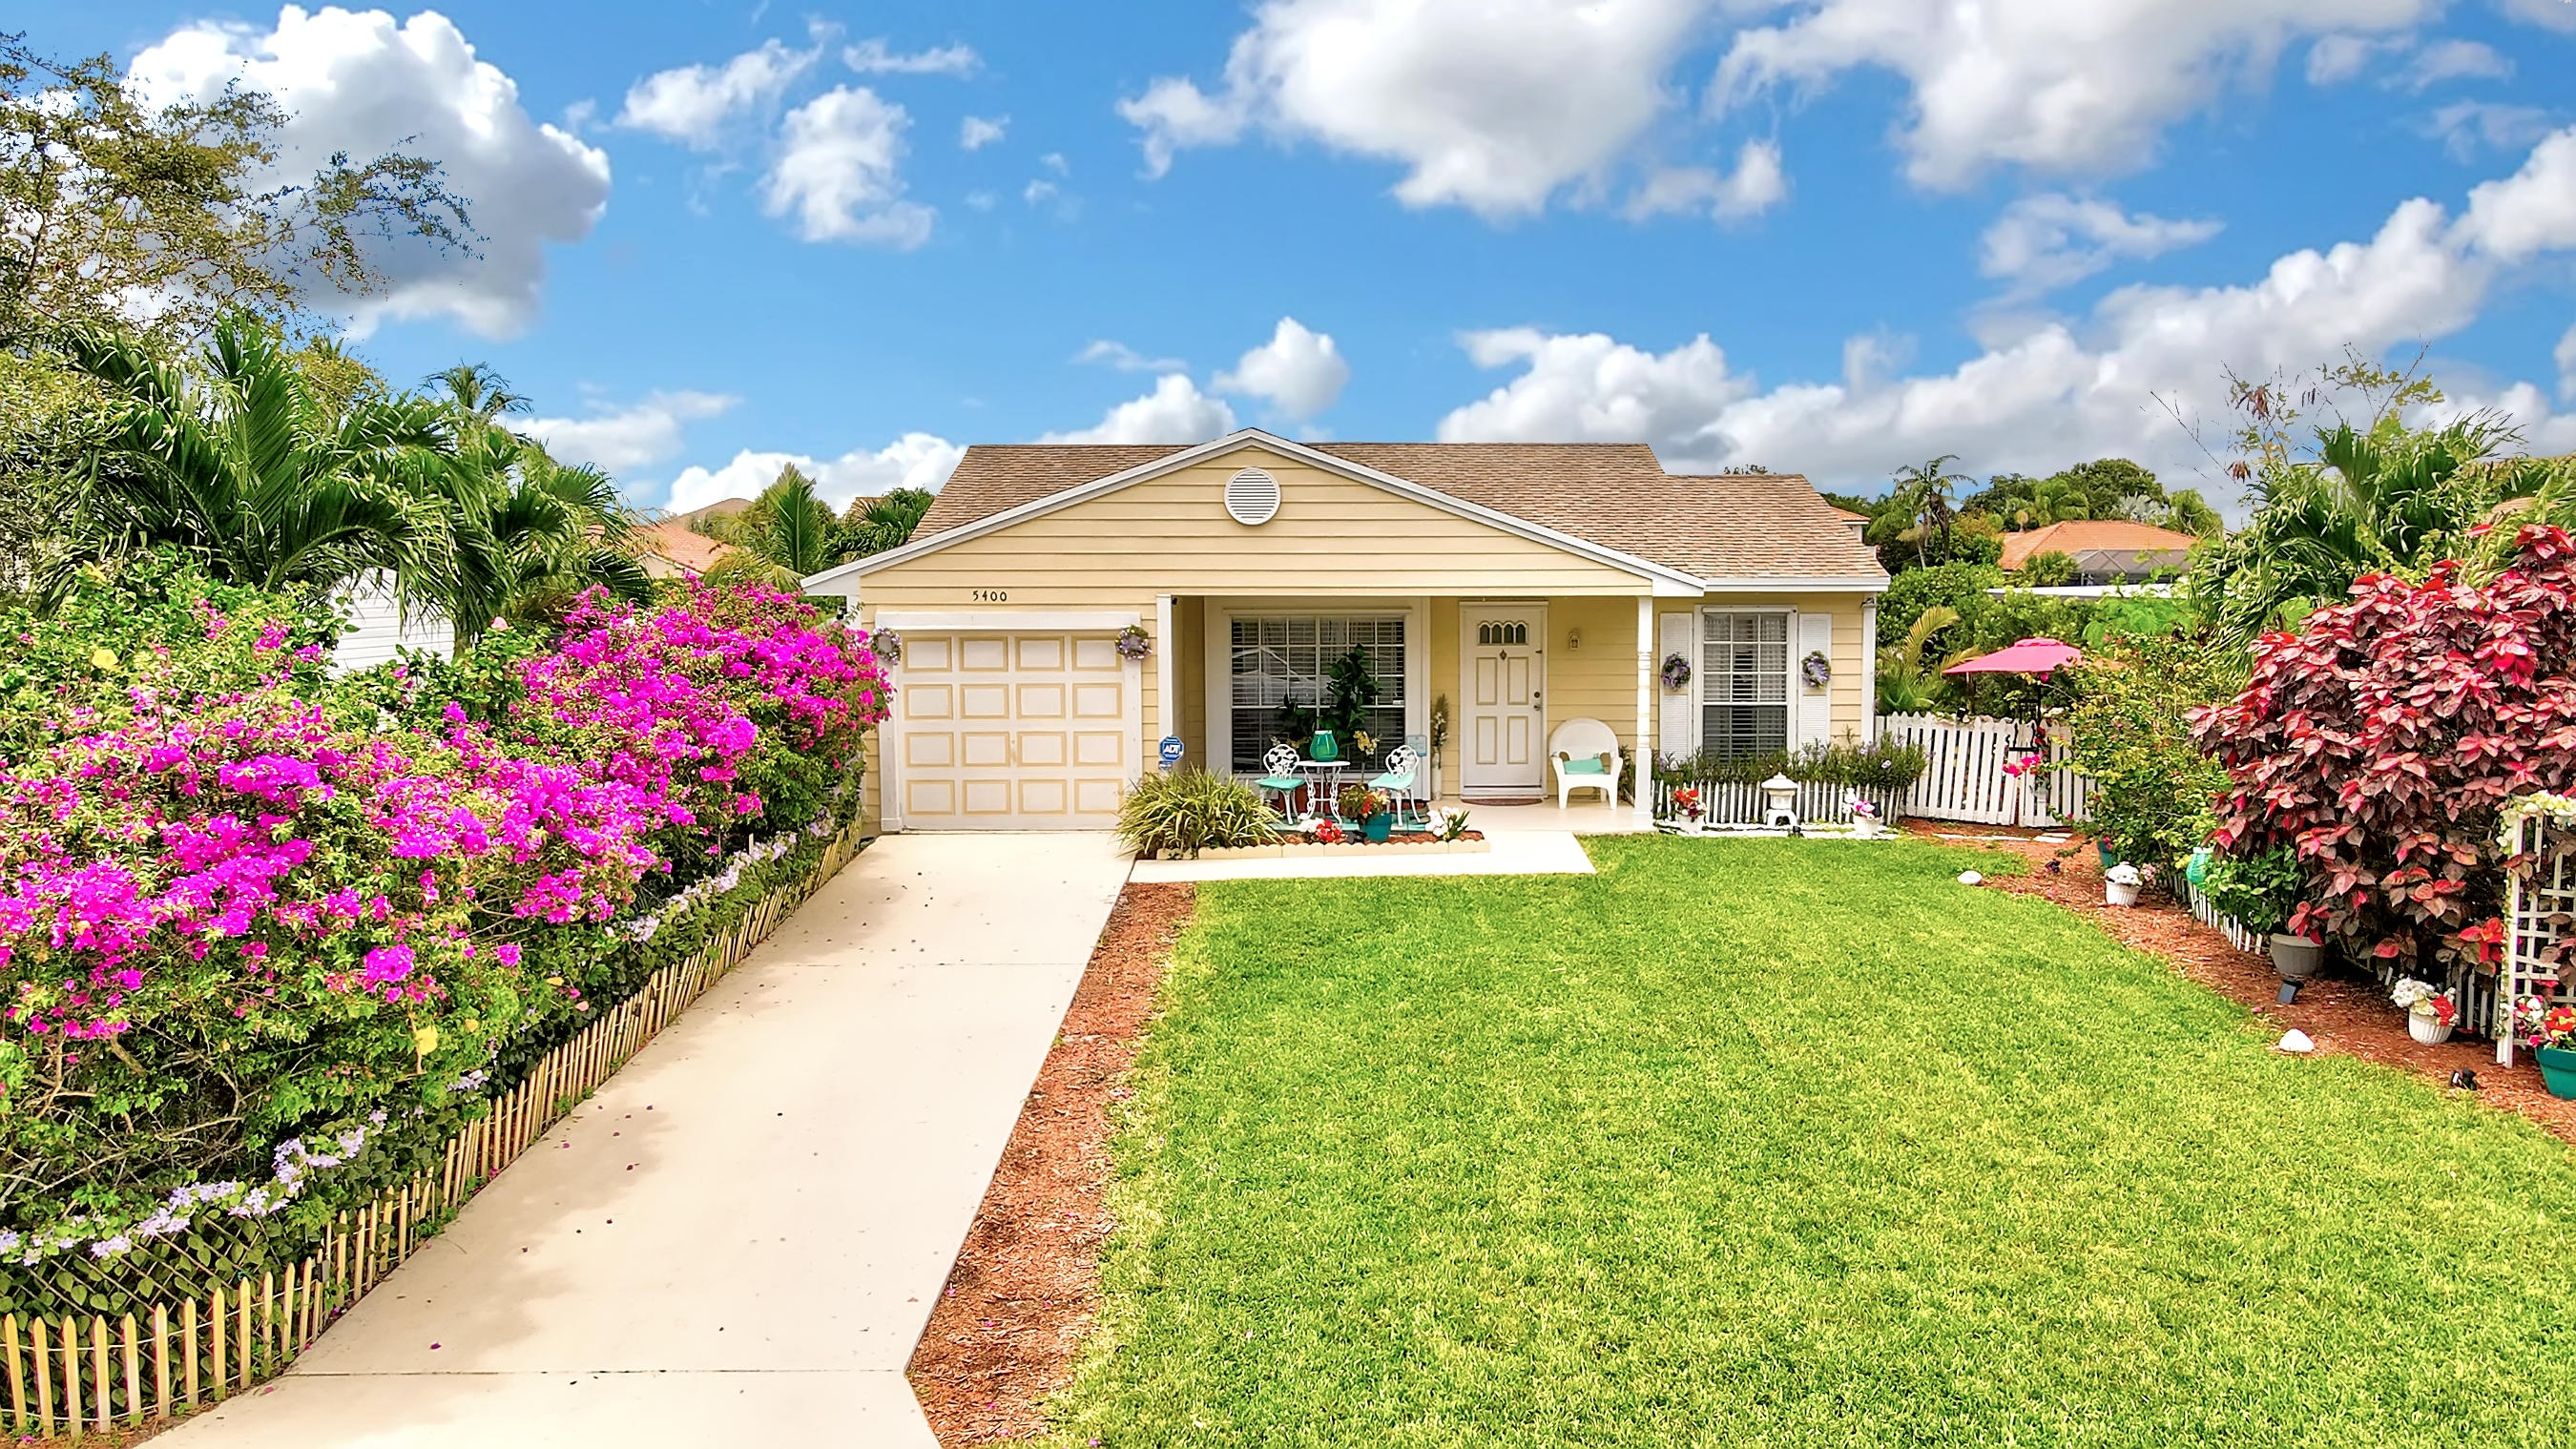 5400  Courtney Circle  For Sale 10729118, FL